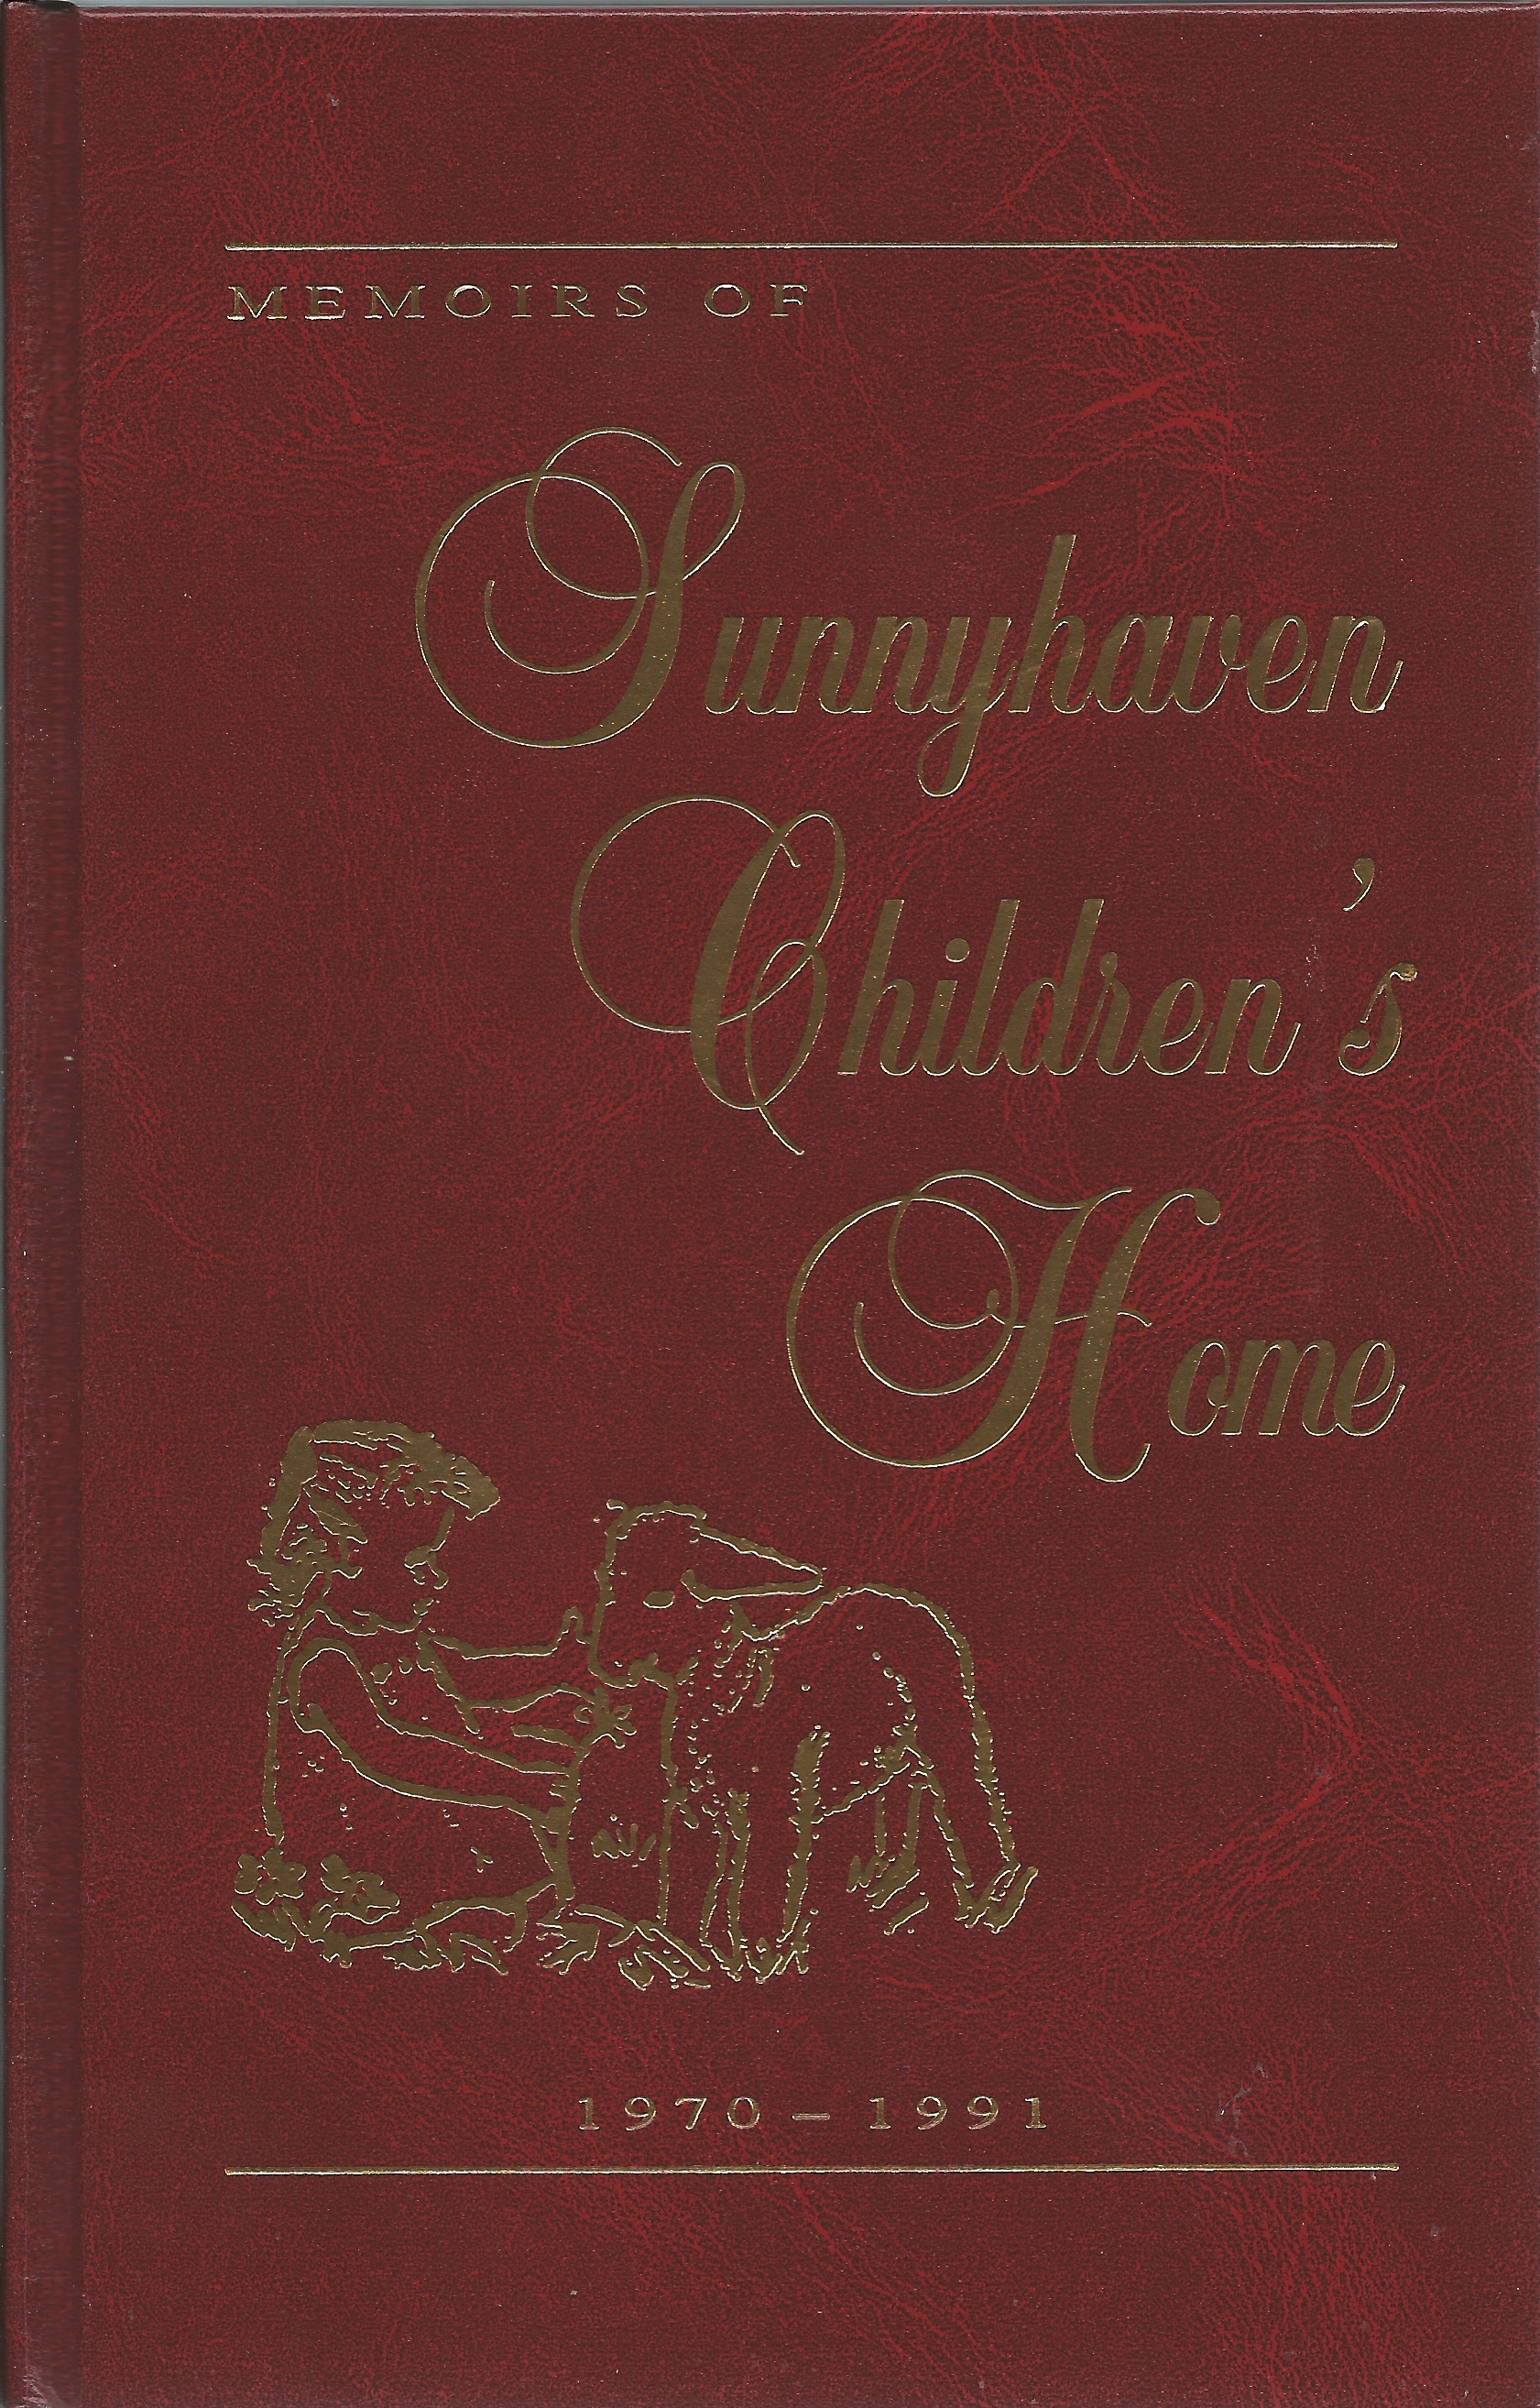 MEMOIRS OF SUNNYHAVEN CHILDREN'S HOME